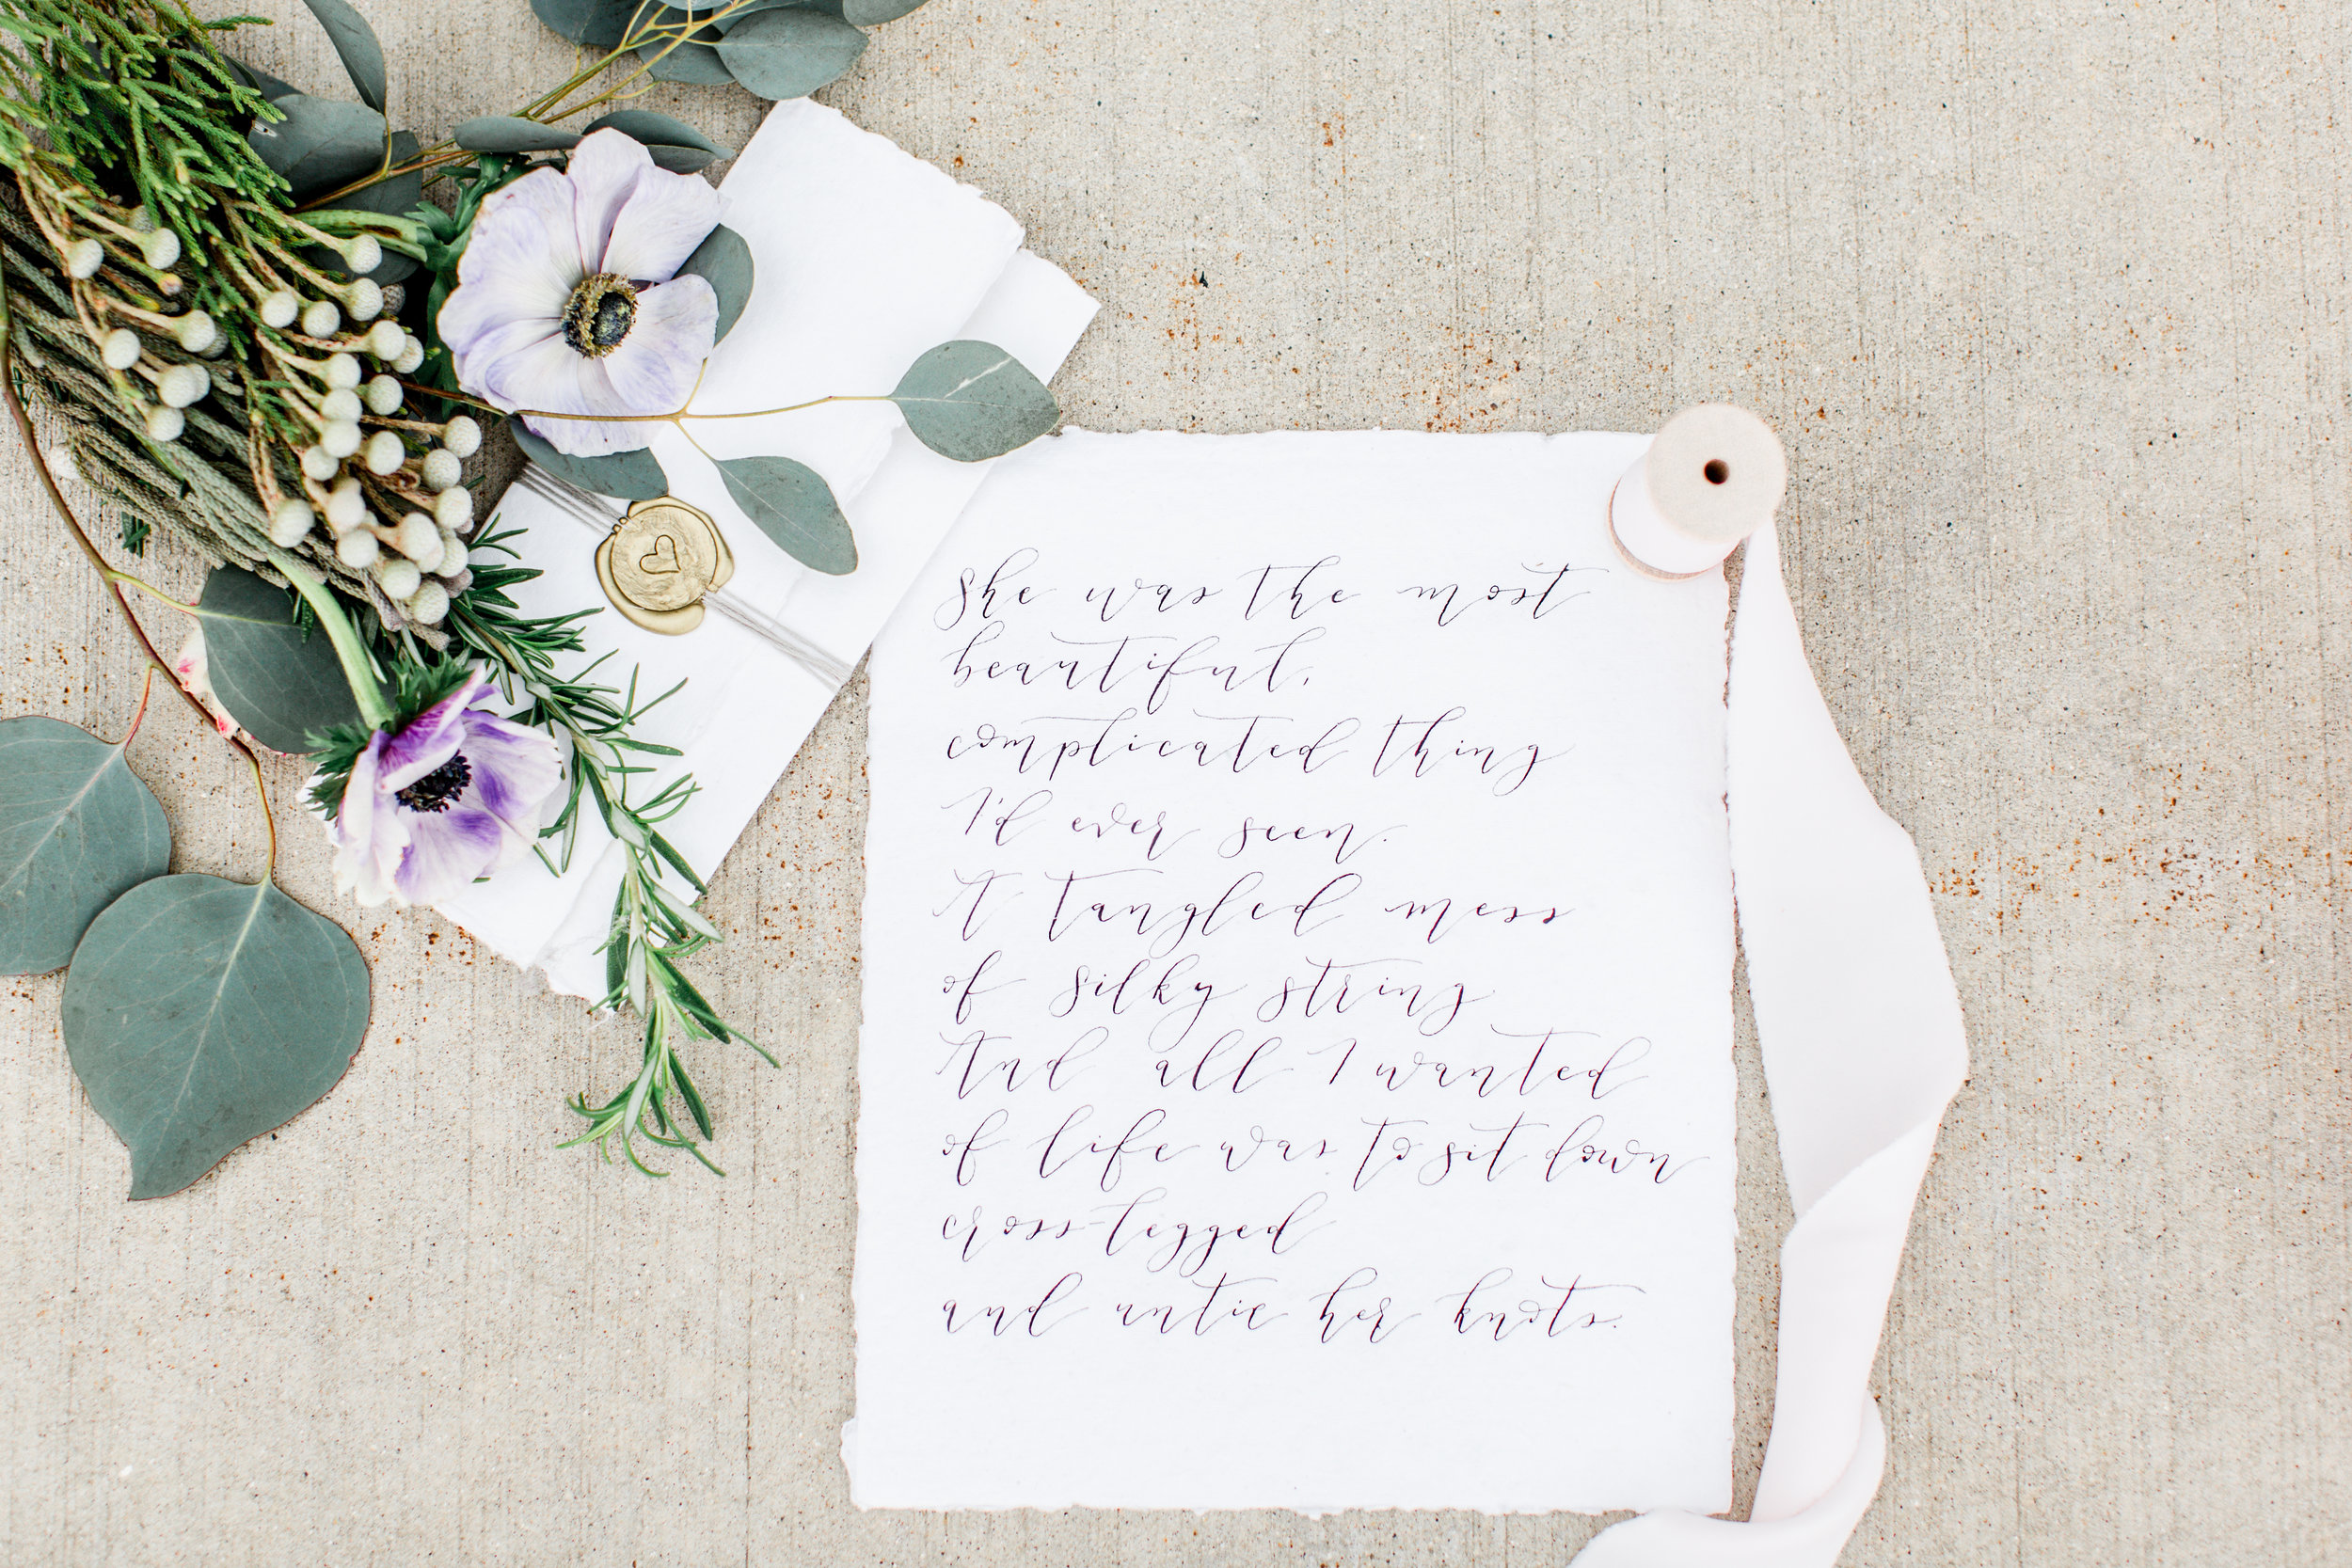 Beautiful calligraphy poem + wax seal by Shelby Made It, ribbon by Torn & Tied